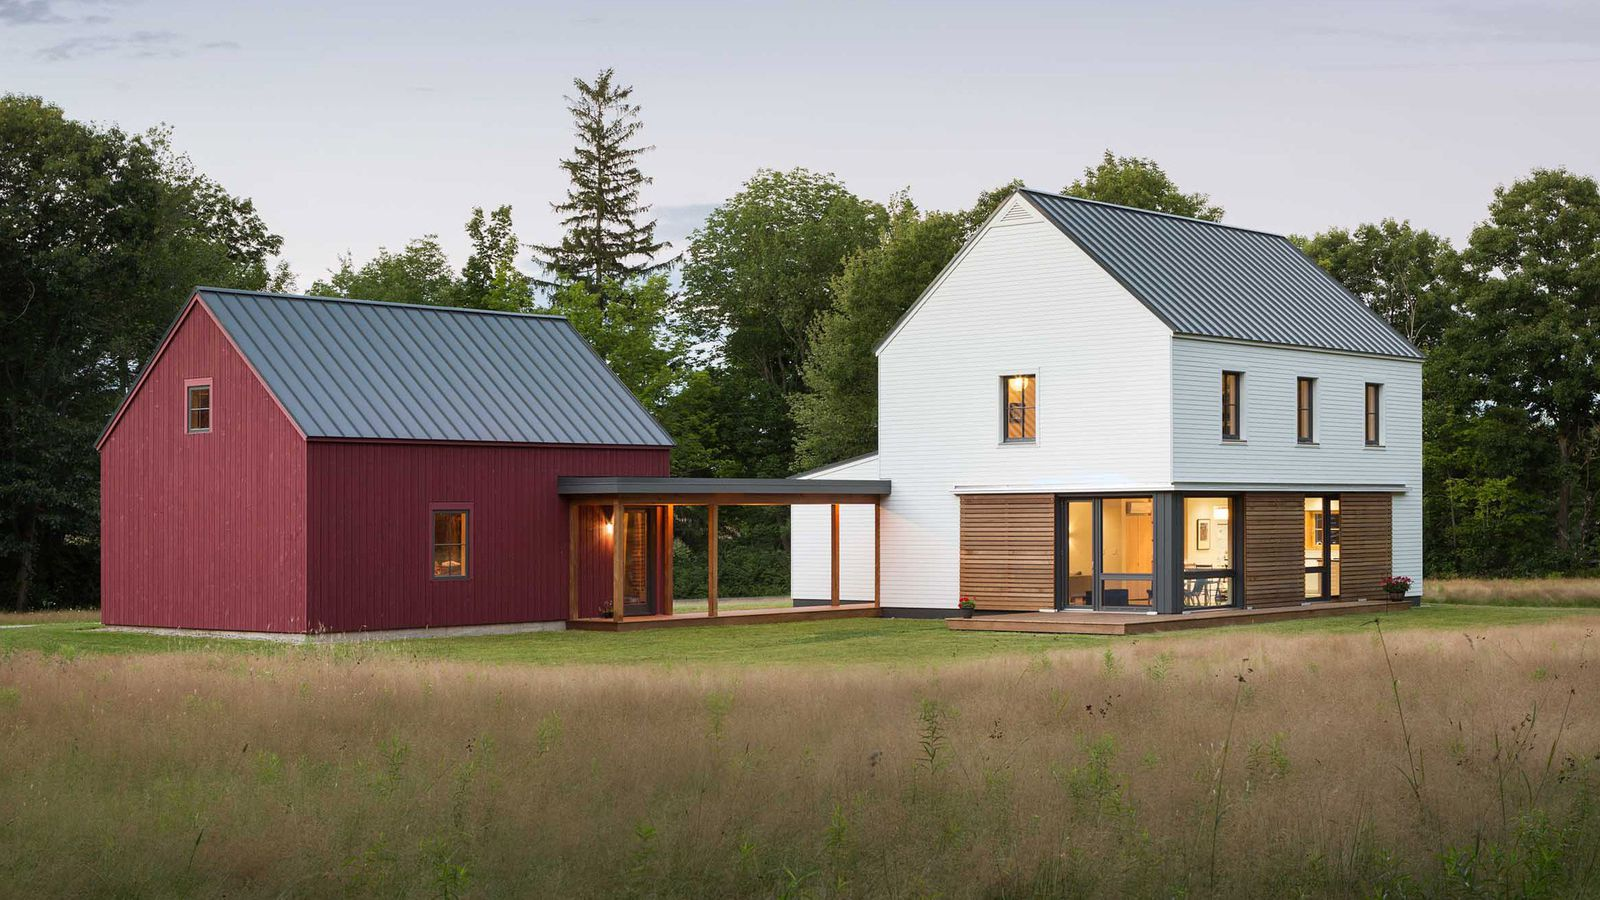 Prefab homes from go logic offer rural modernism for Pre built barn homes